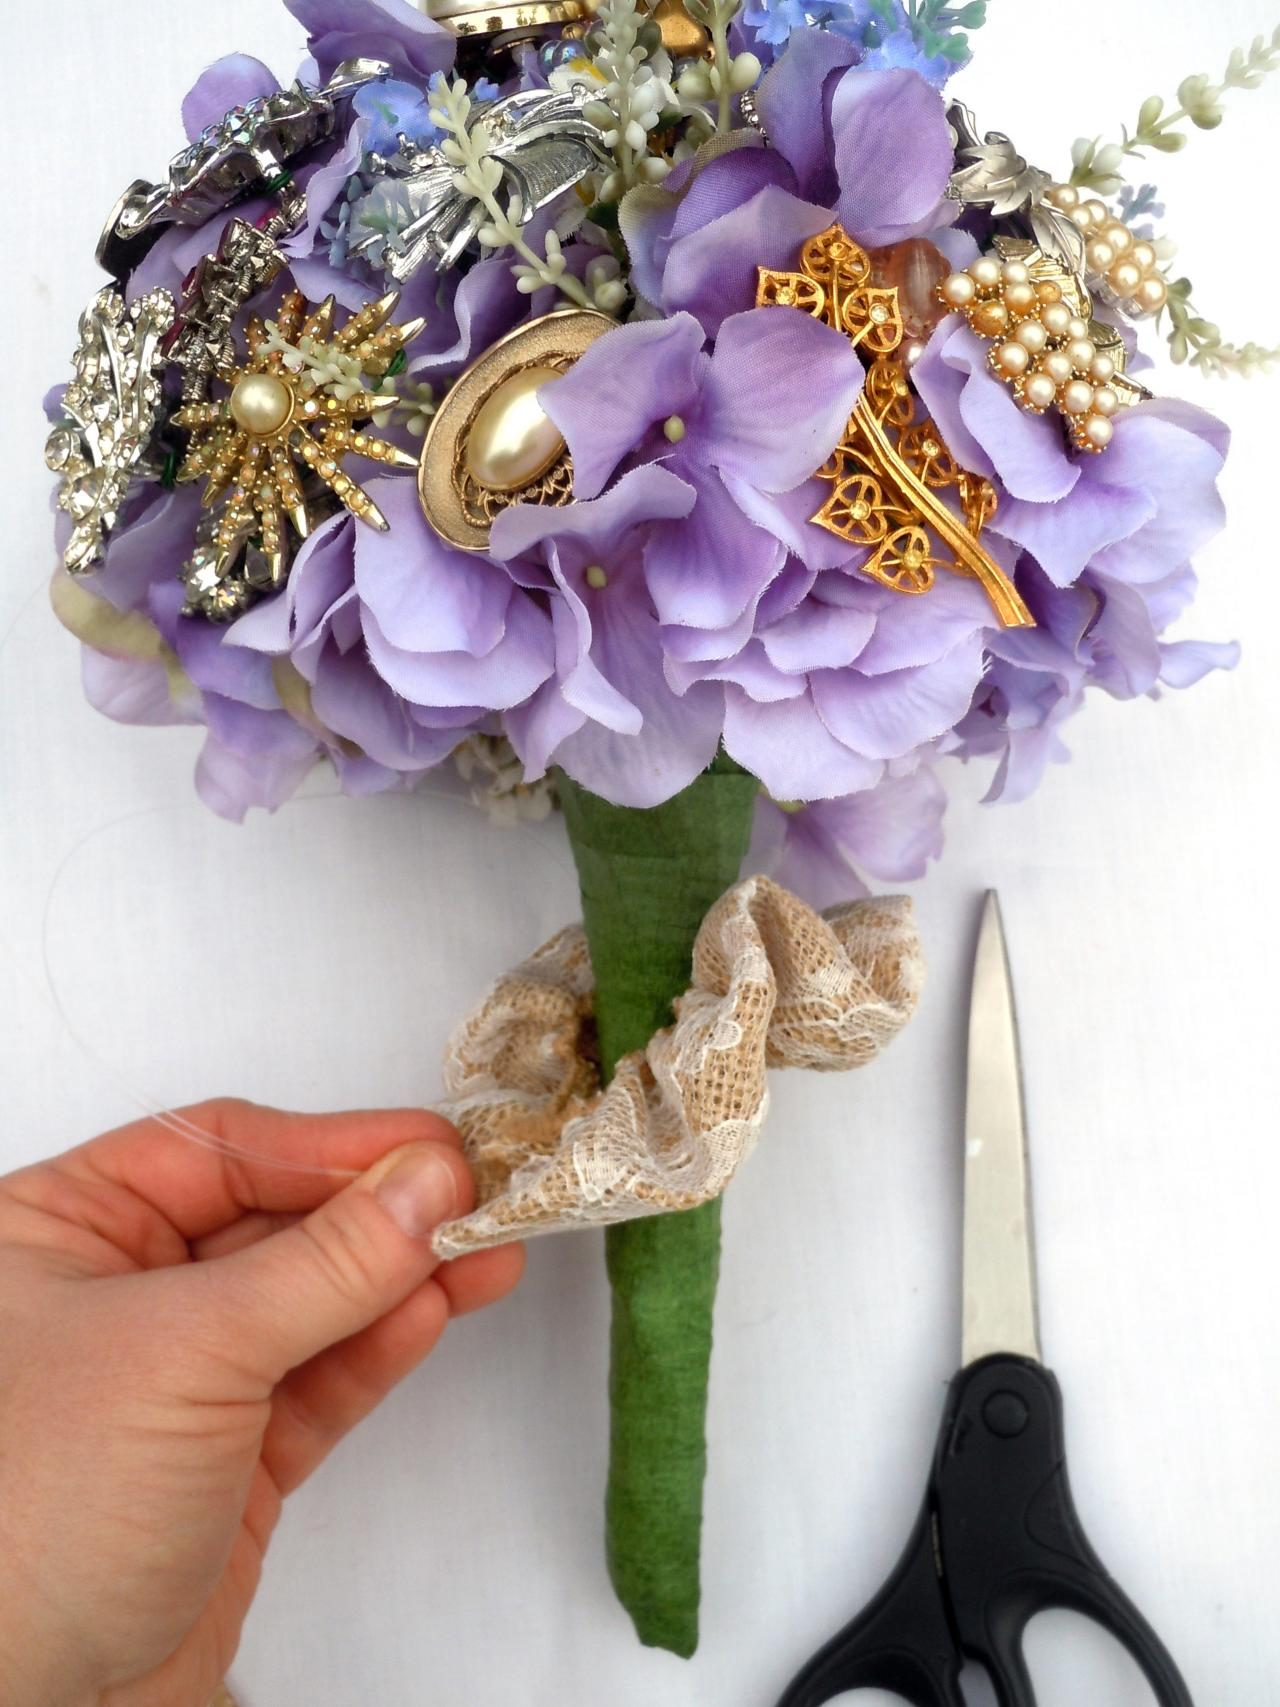 How to Make a Brooch Bridal Bouquet | how-tos | DIY